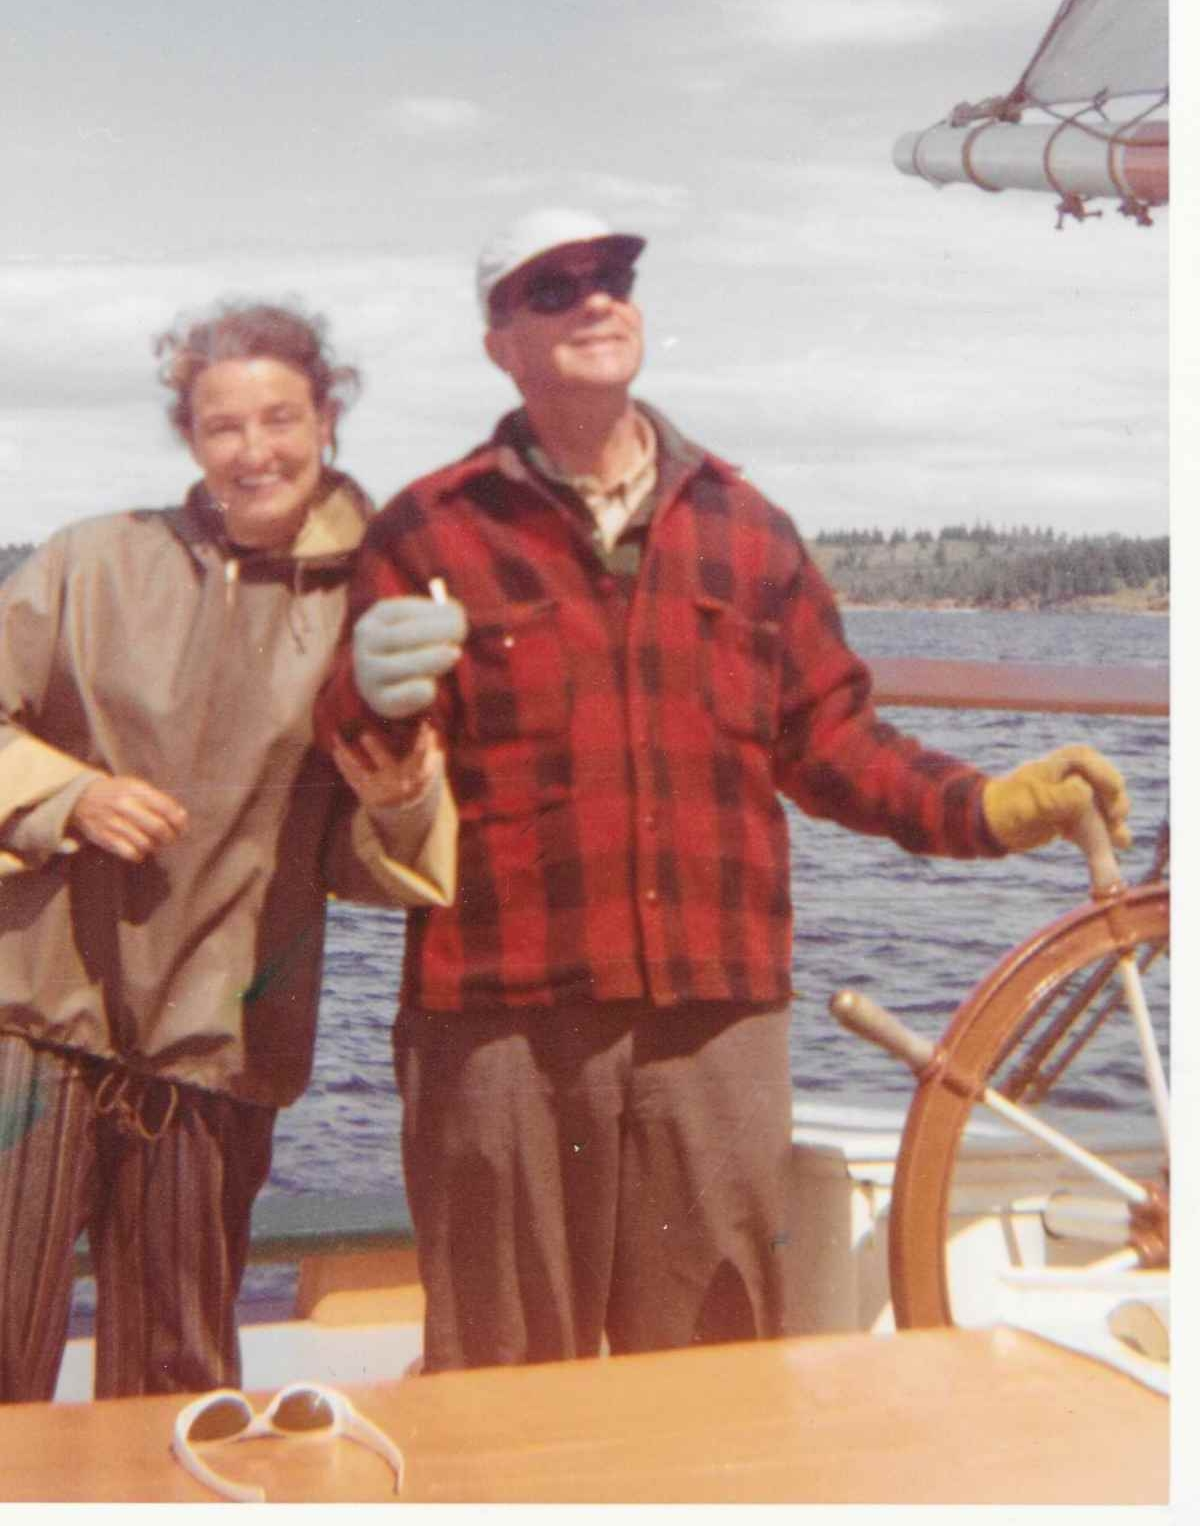 Leatha and Captain Cy aboard the STEPHEN TABOR on Blue Hill Bay, c.1960s. Webber's Cove Boatyards. Blue Hill, Maine.